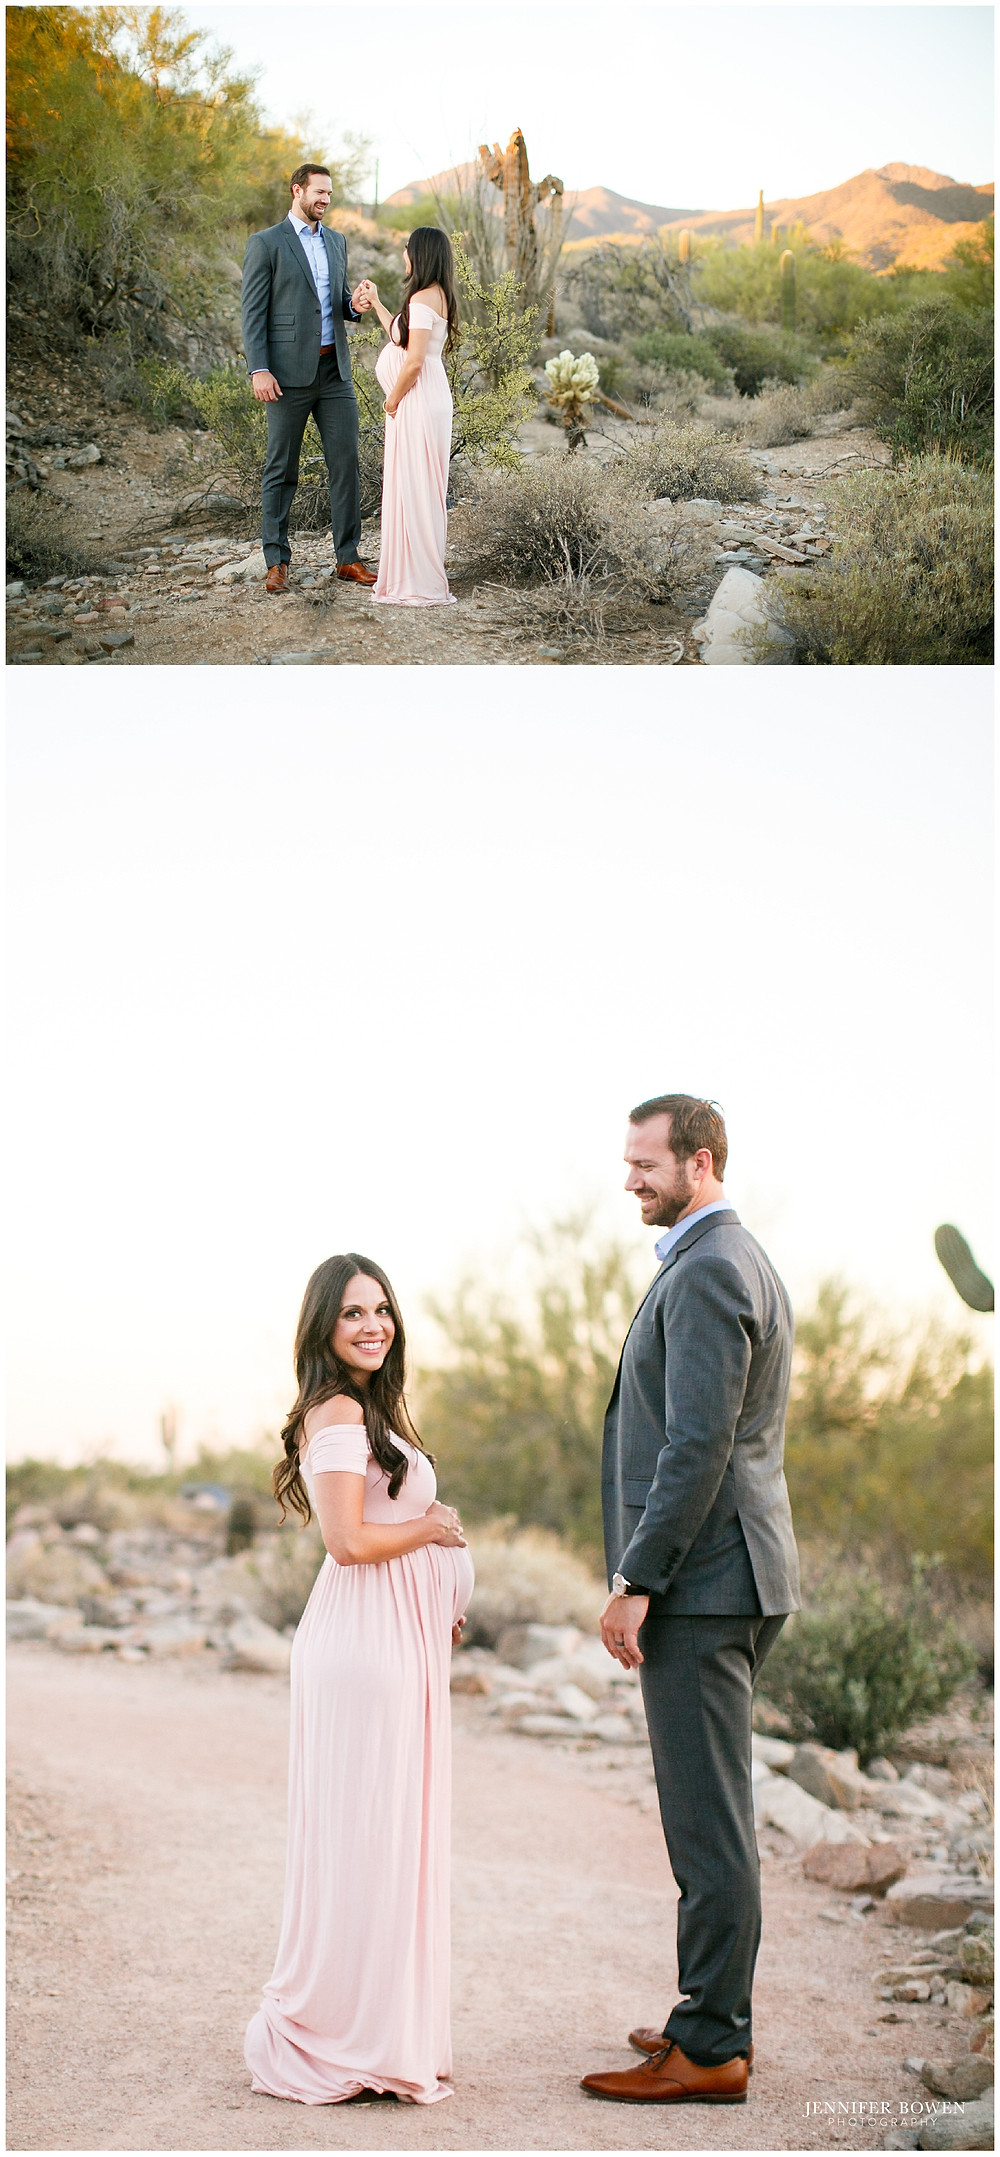 Desert maternity session in Scottsdale